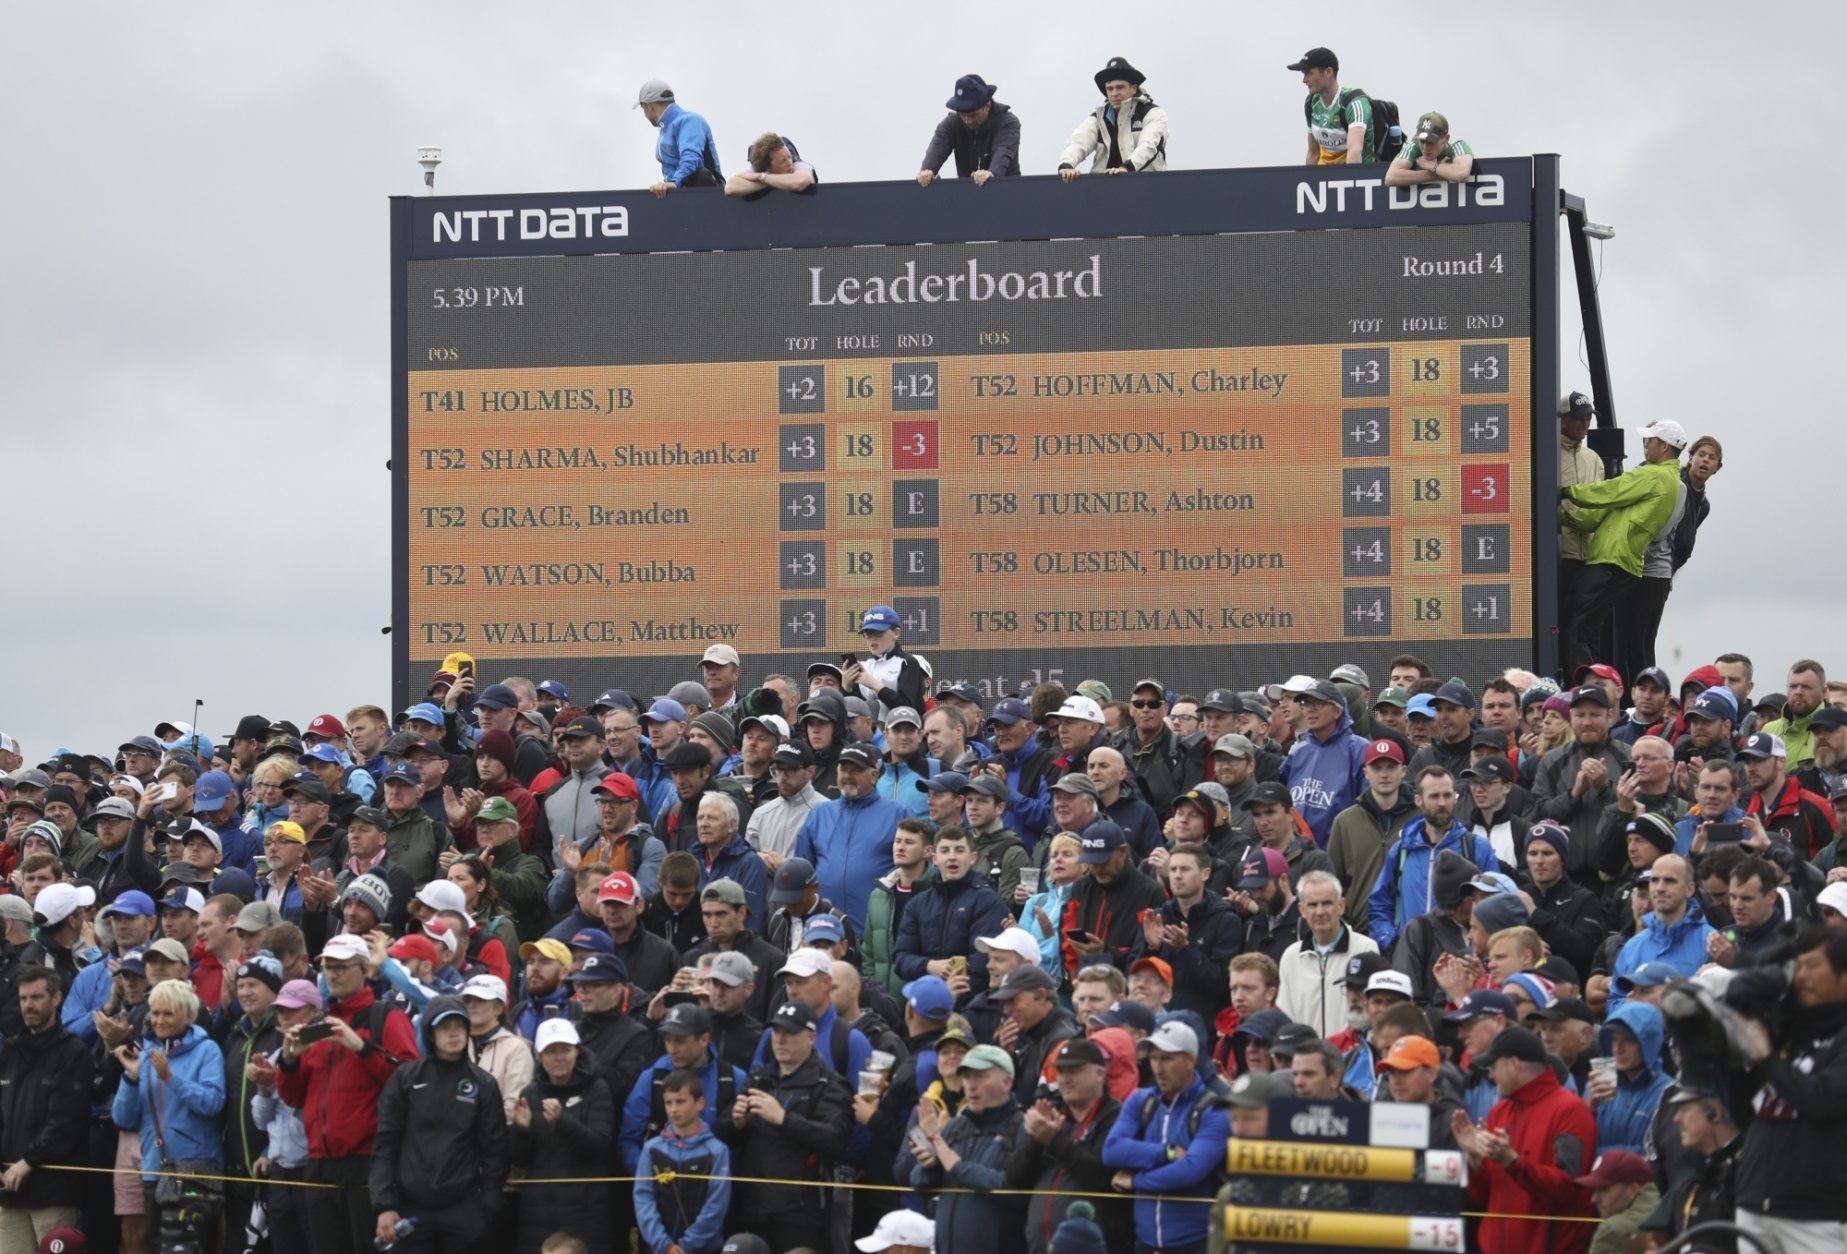 Spectators clamber on to and on top of a scoreboard as they vie to get a glimpse of Ireland's Shane Lowry and England's Tommy Fleetwood as they play during the final round of the British Open Golf Championships at Royal Portrush in Northern Ireland, Sunday, July 21, 2019.(AP Photo/Peter Morrison)